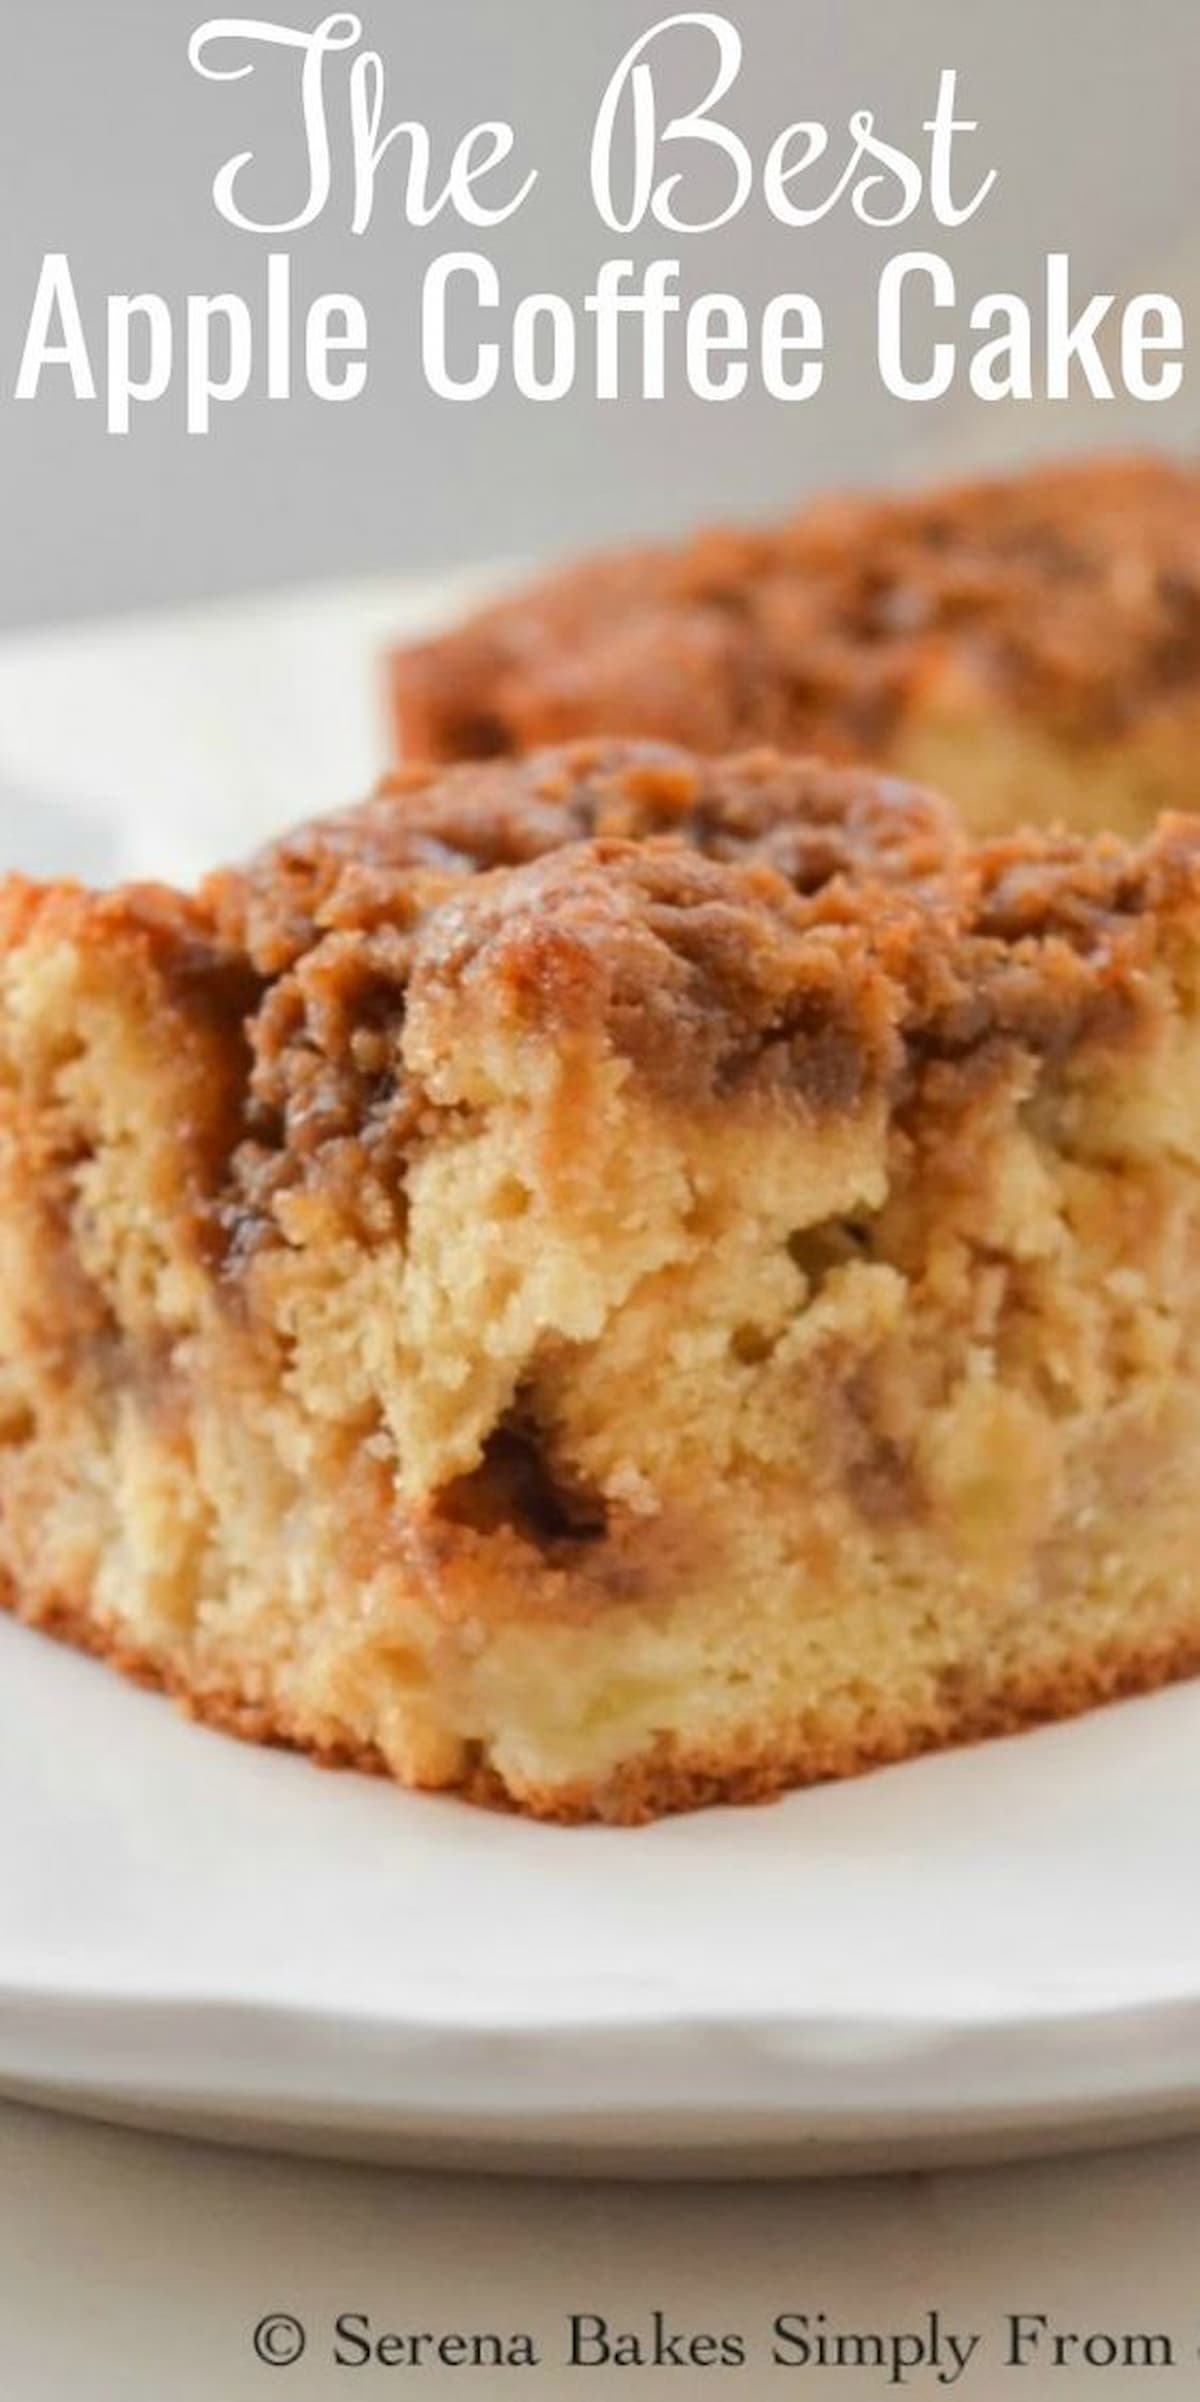 Apple Coffee Cake with Brown Sugar Crumb with white text at the top The BEST Apple Coffee Cake.